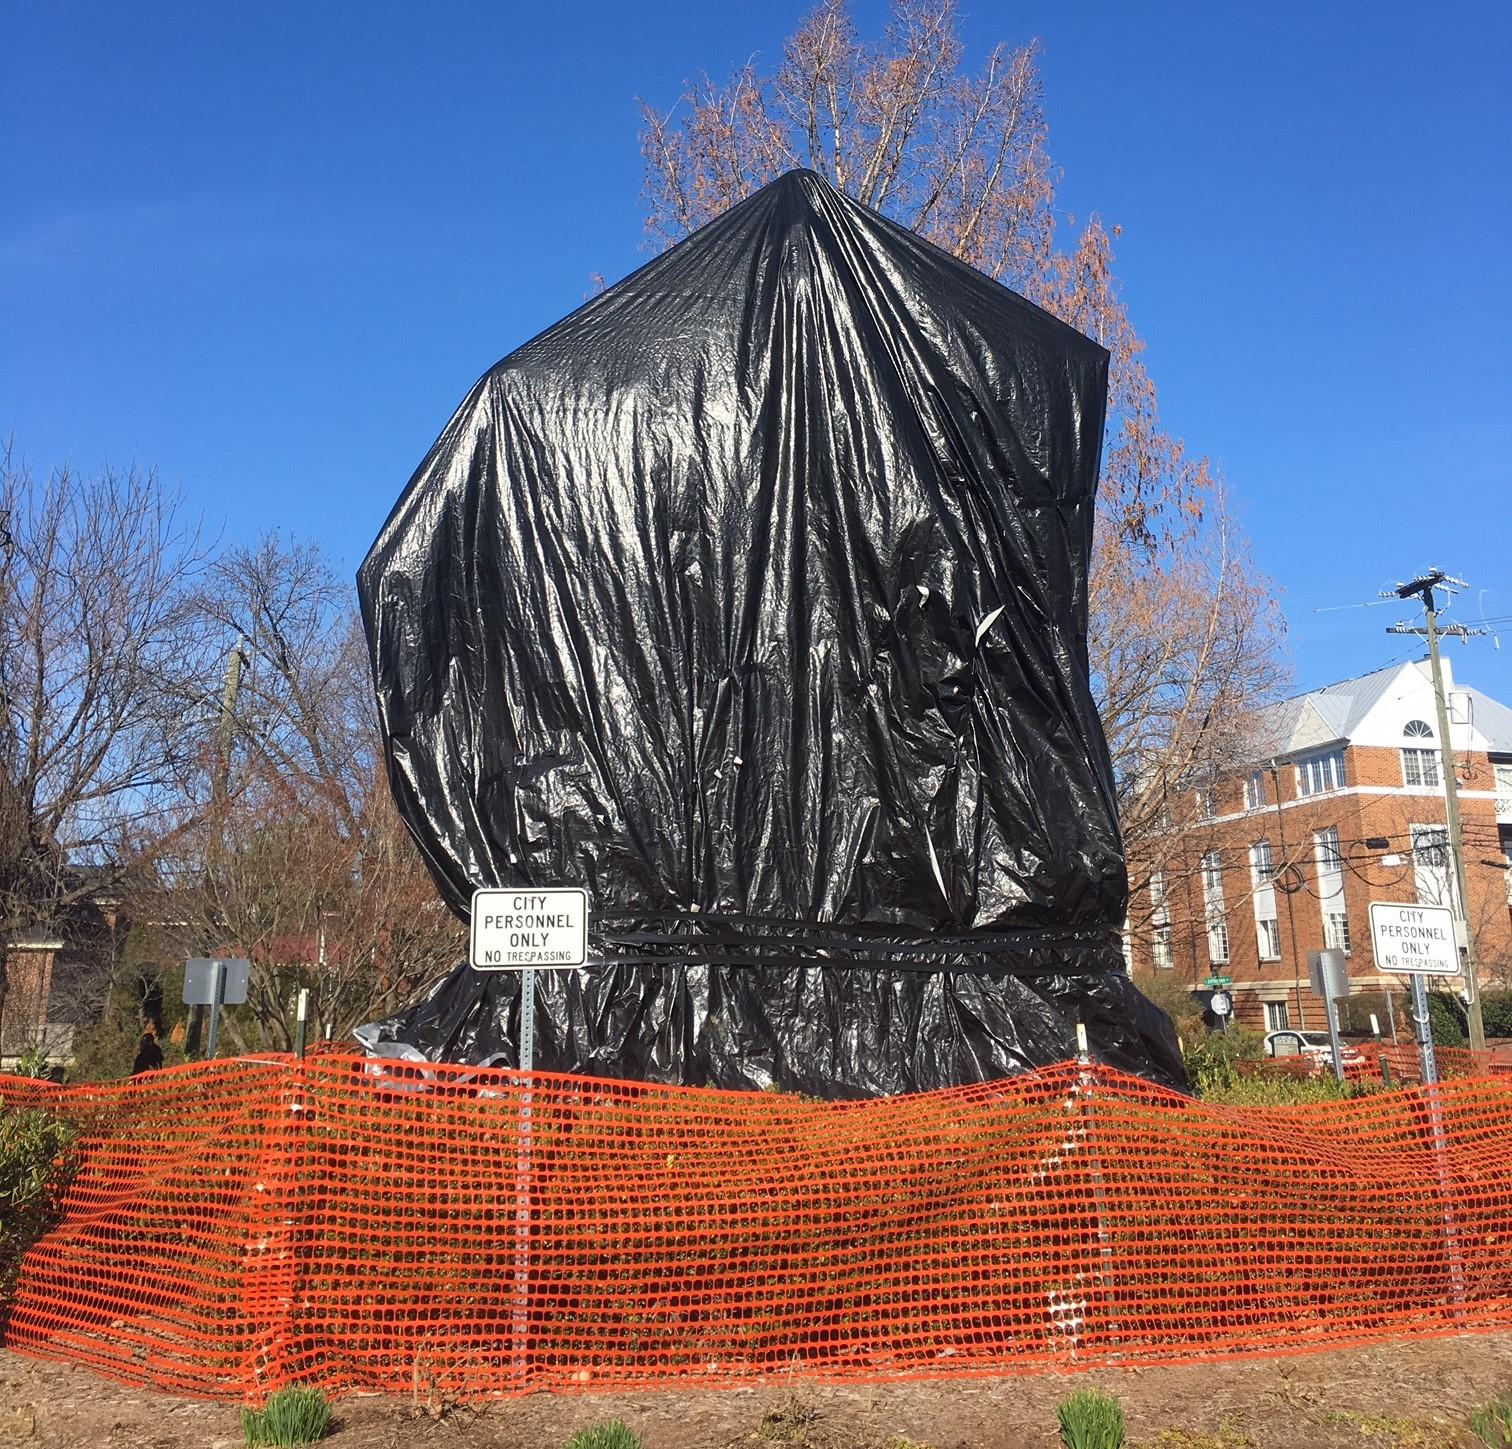 Charlottesville judge says tarps must be removed from Confederate statues